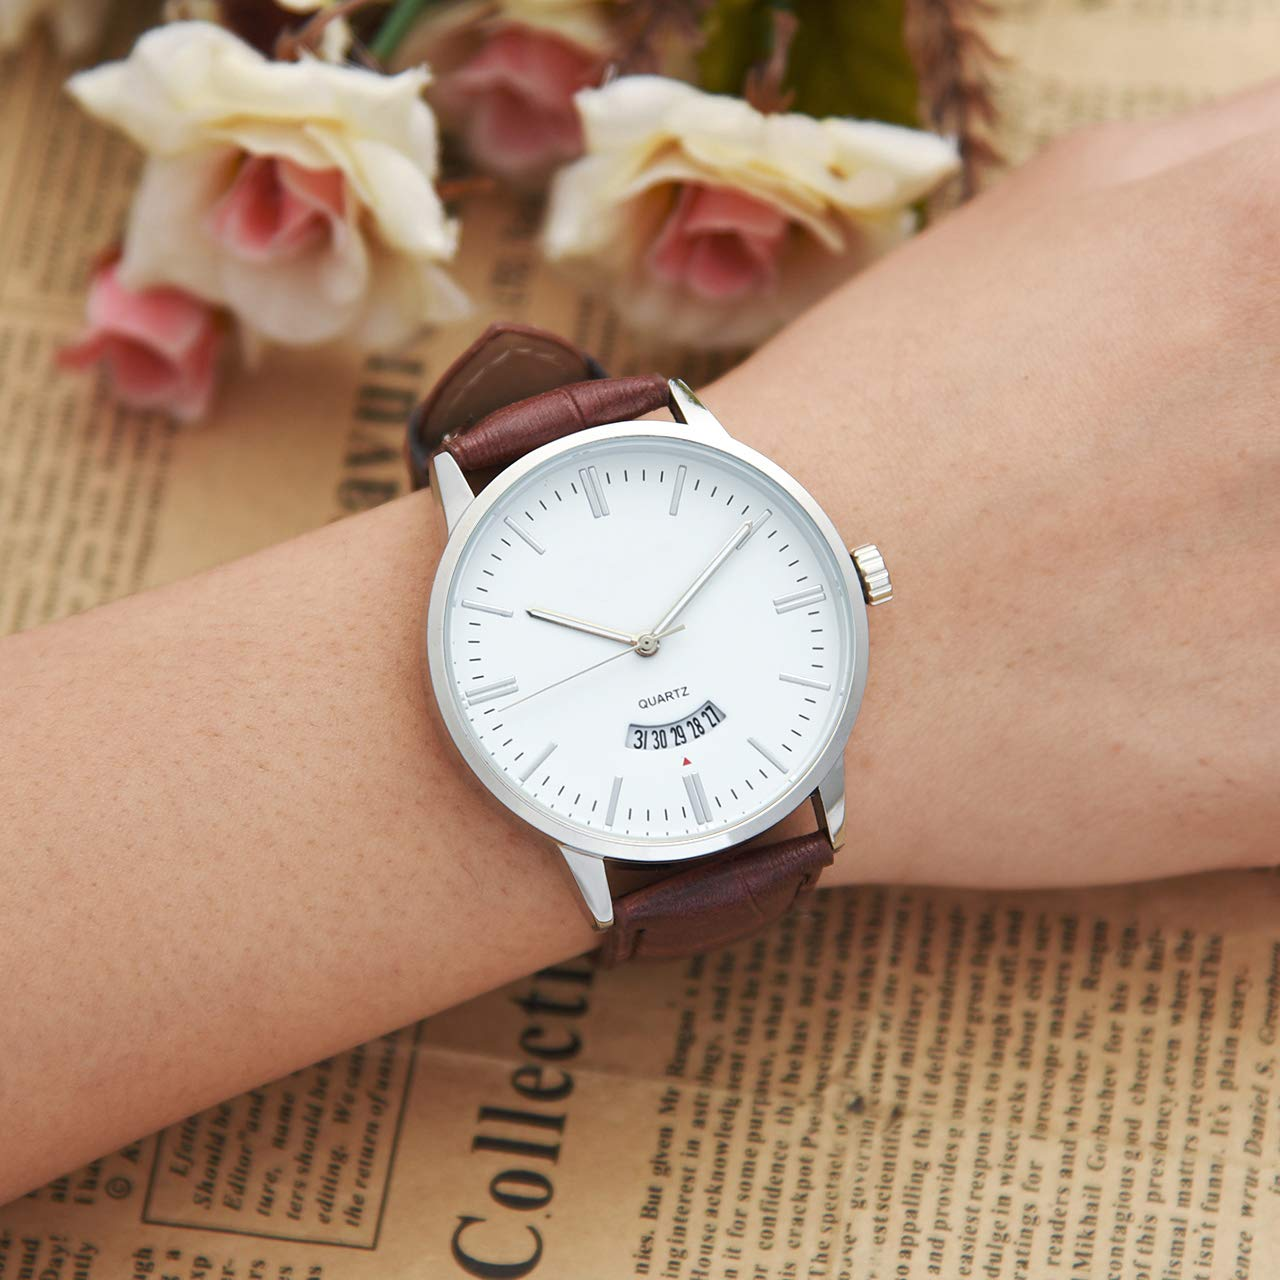 Top Plaza Mens Leather Wrist Watch Classic Simple Silver Analog Quartz Dress Watches with Calendar - Brown #2